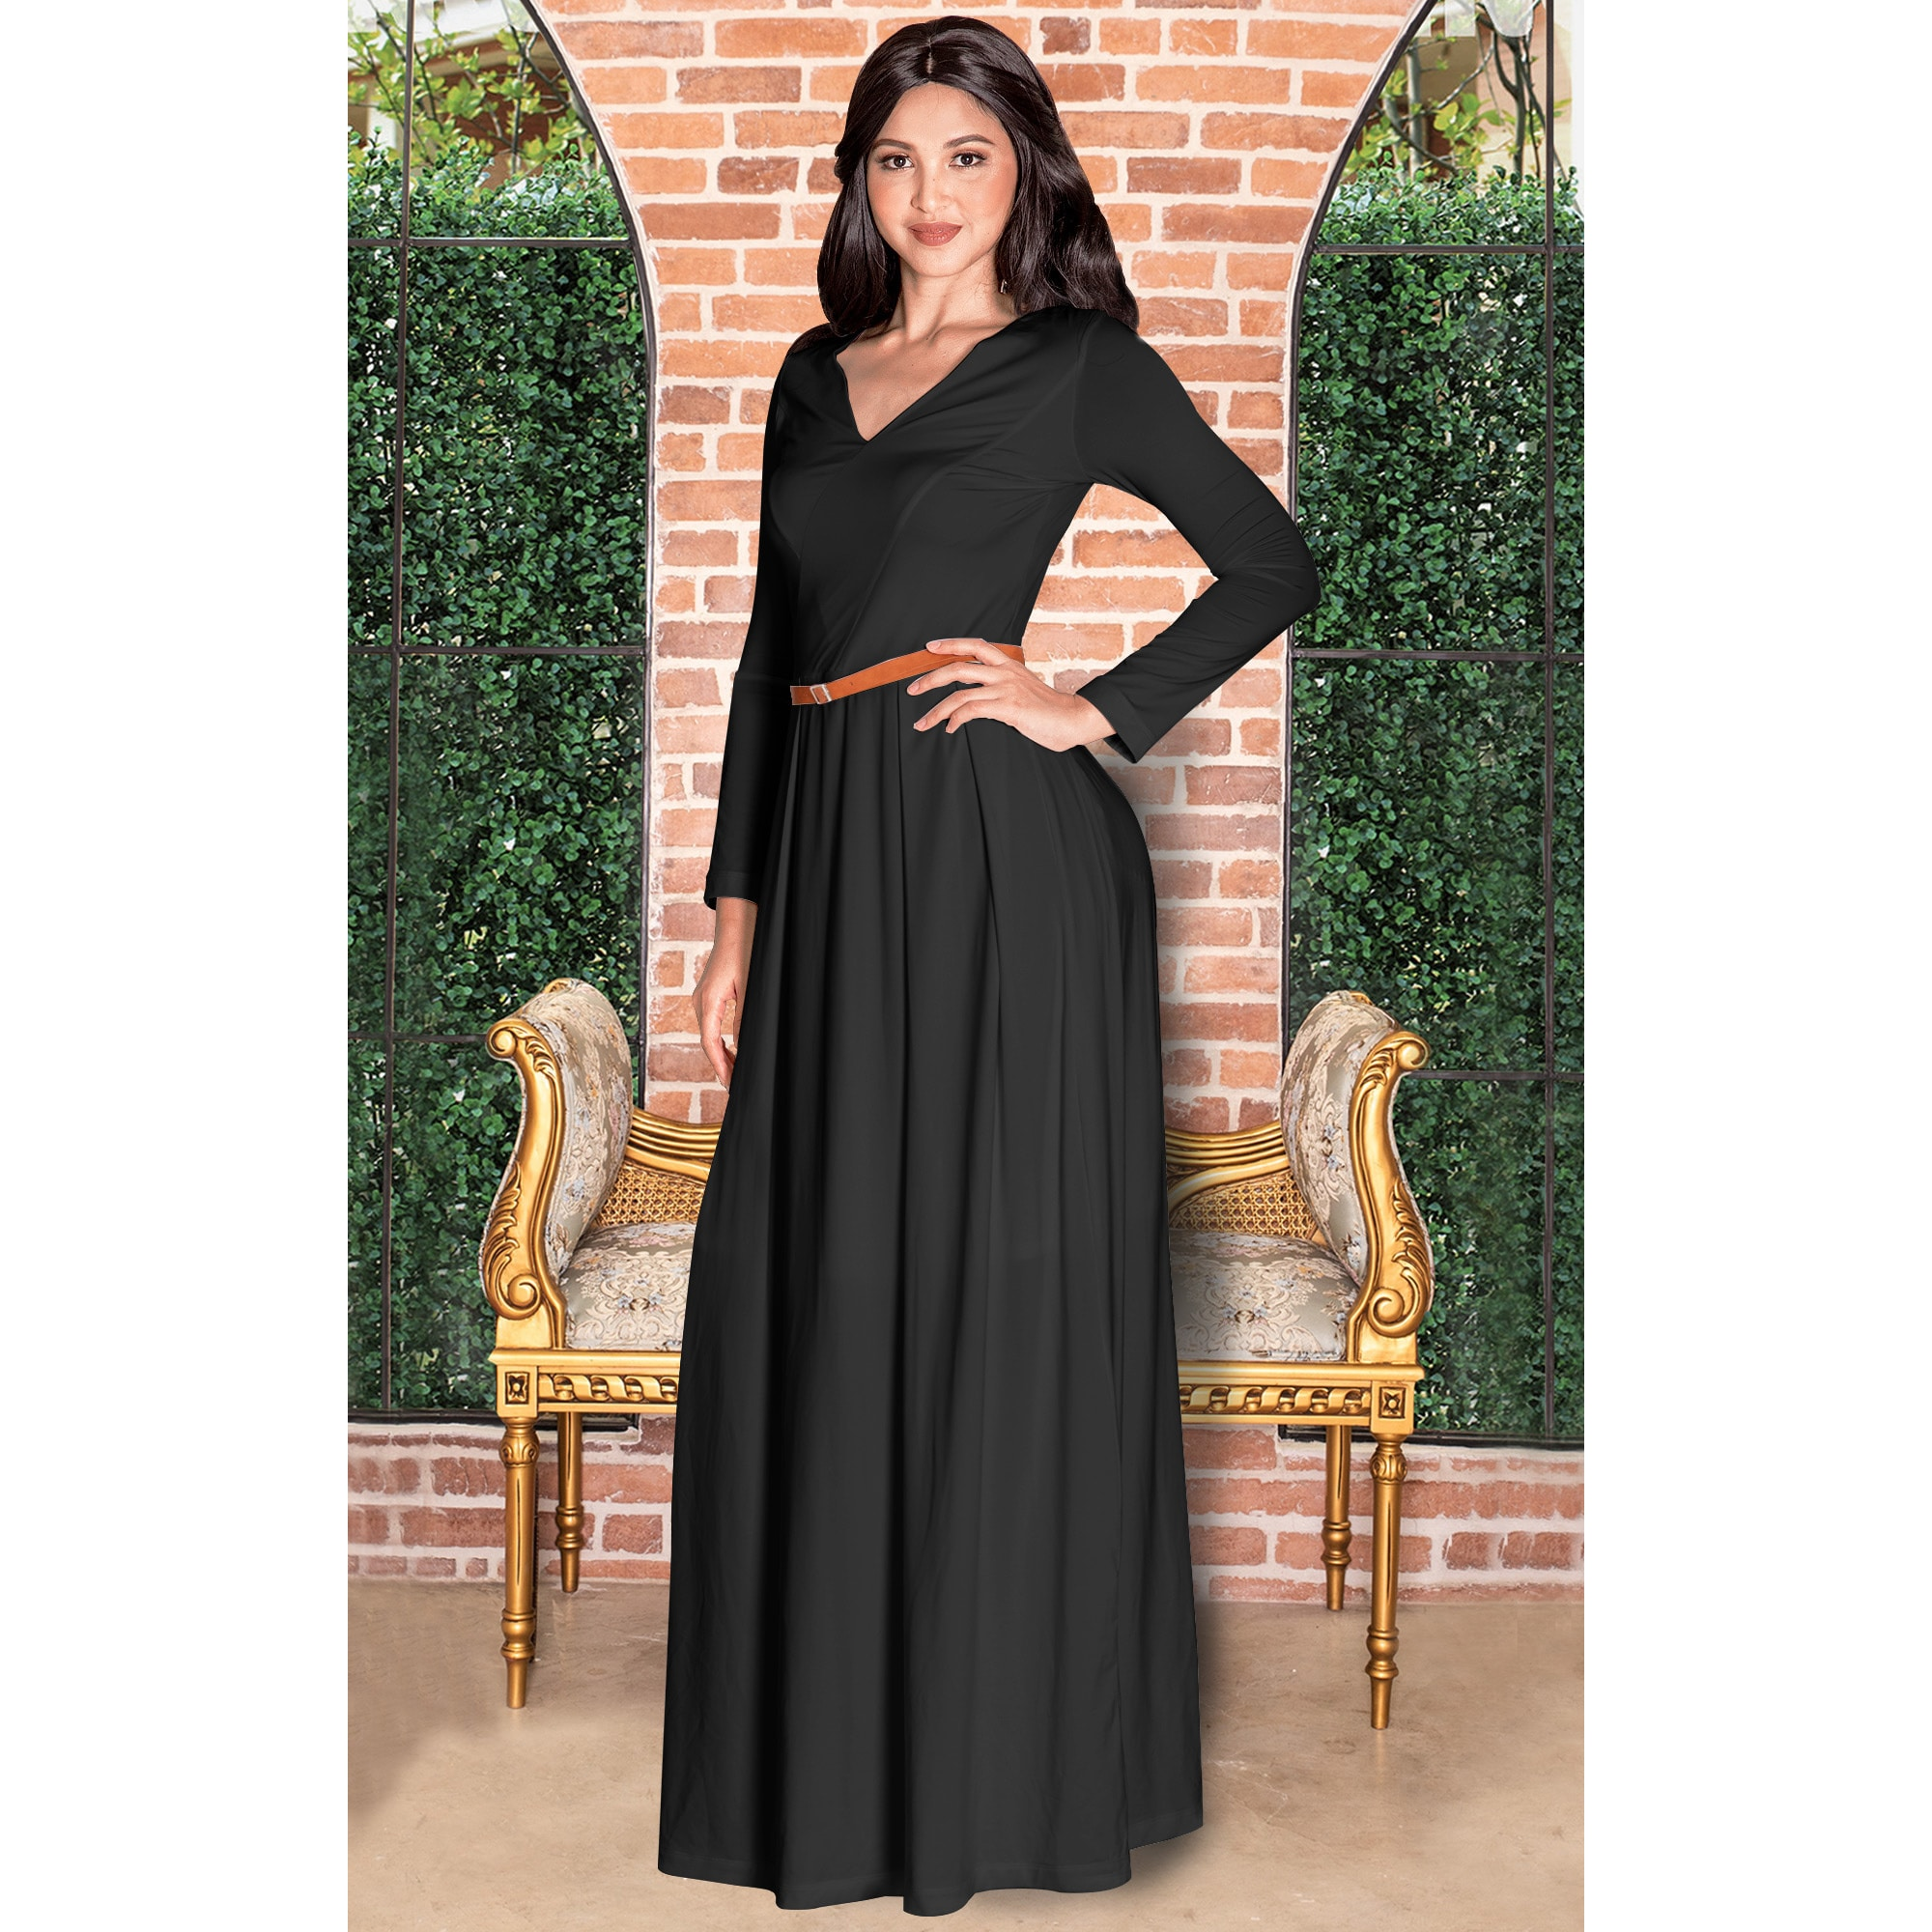 1b0e465ee077 Shop KOH KOH Long Sleeve Elegant Evening Flowy Dressy Fall Maxi Dress Gown  - Free Shipping On Orders Over  45 - Overstock - 10835728